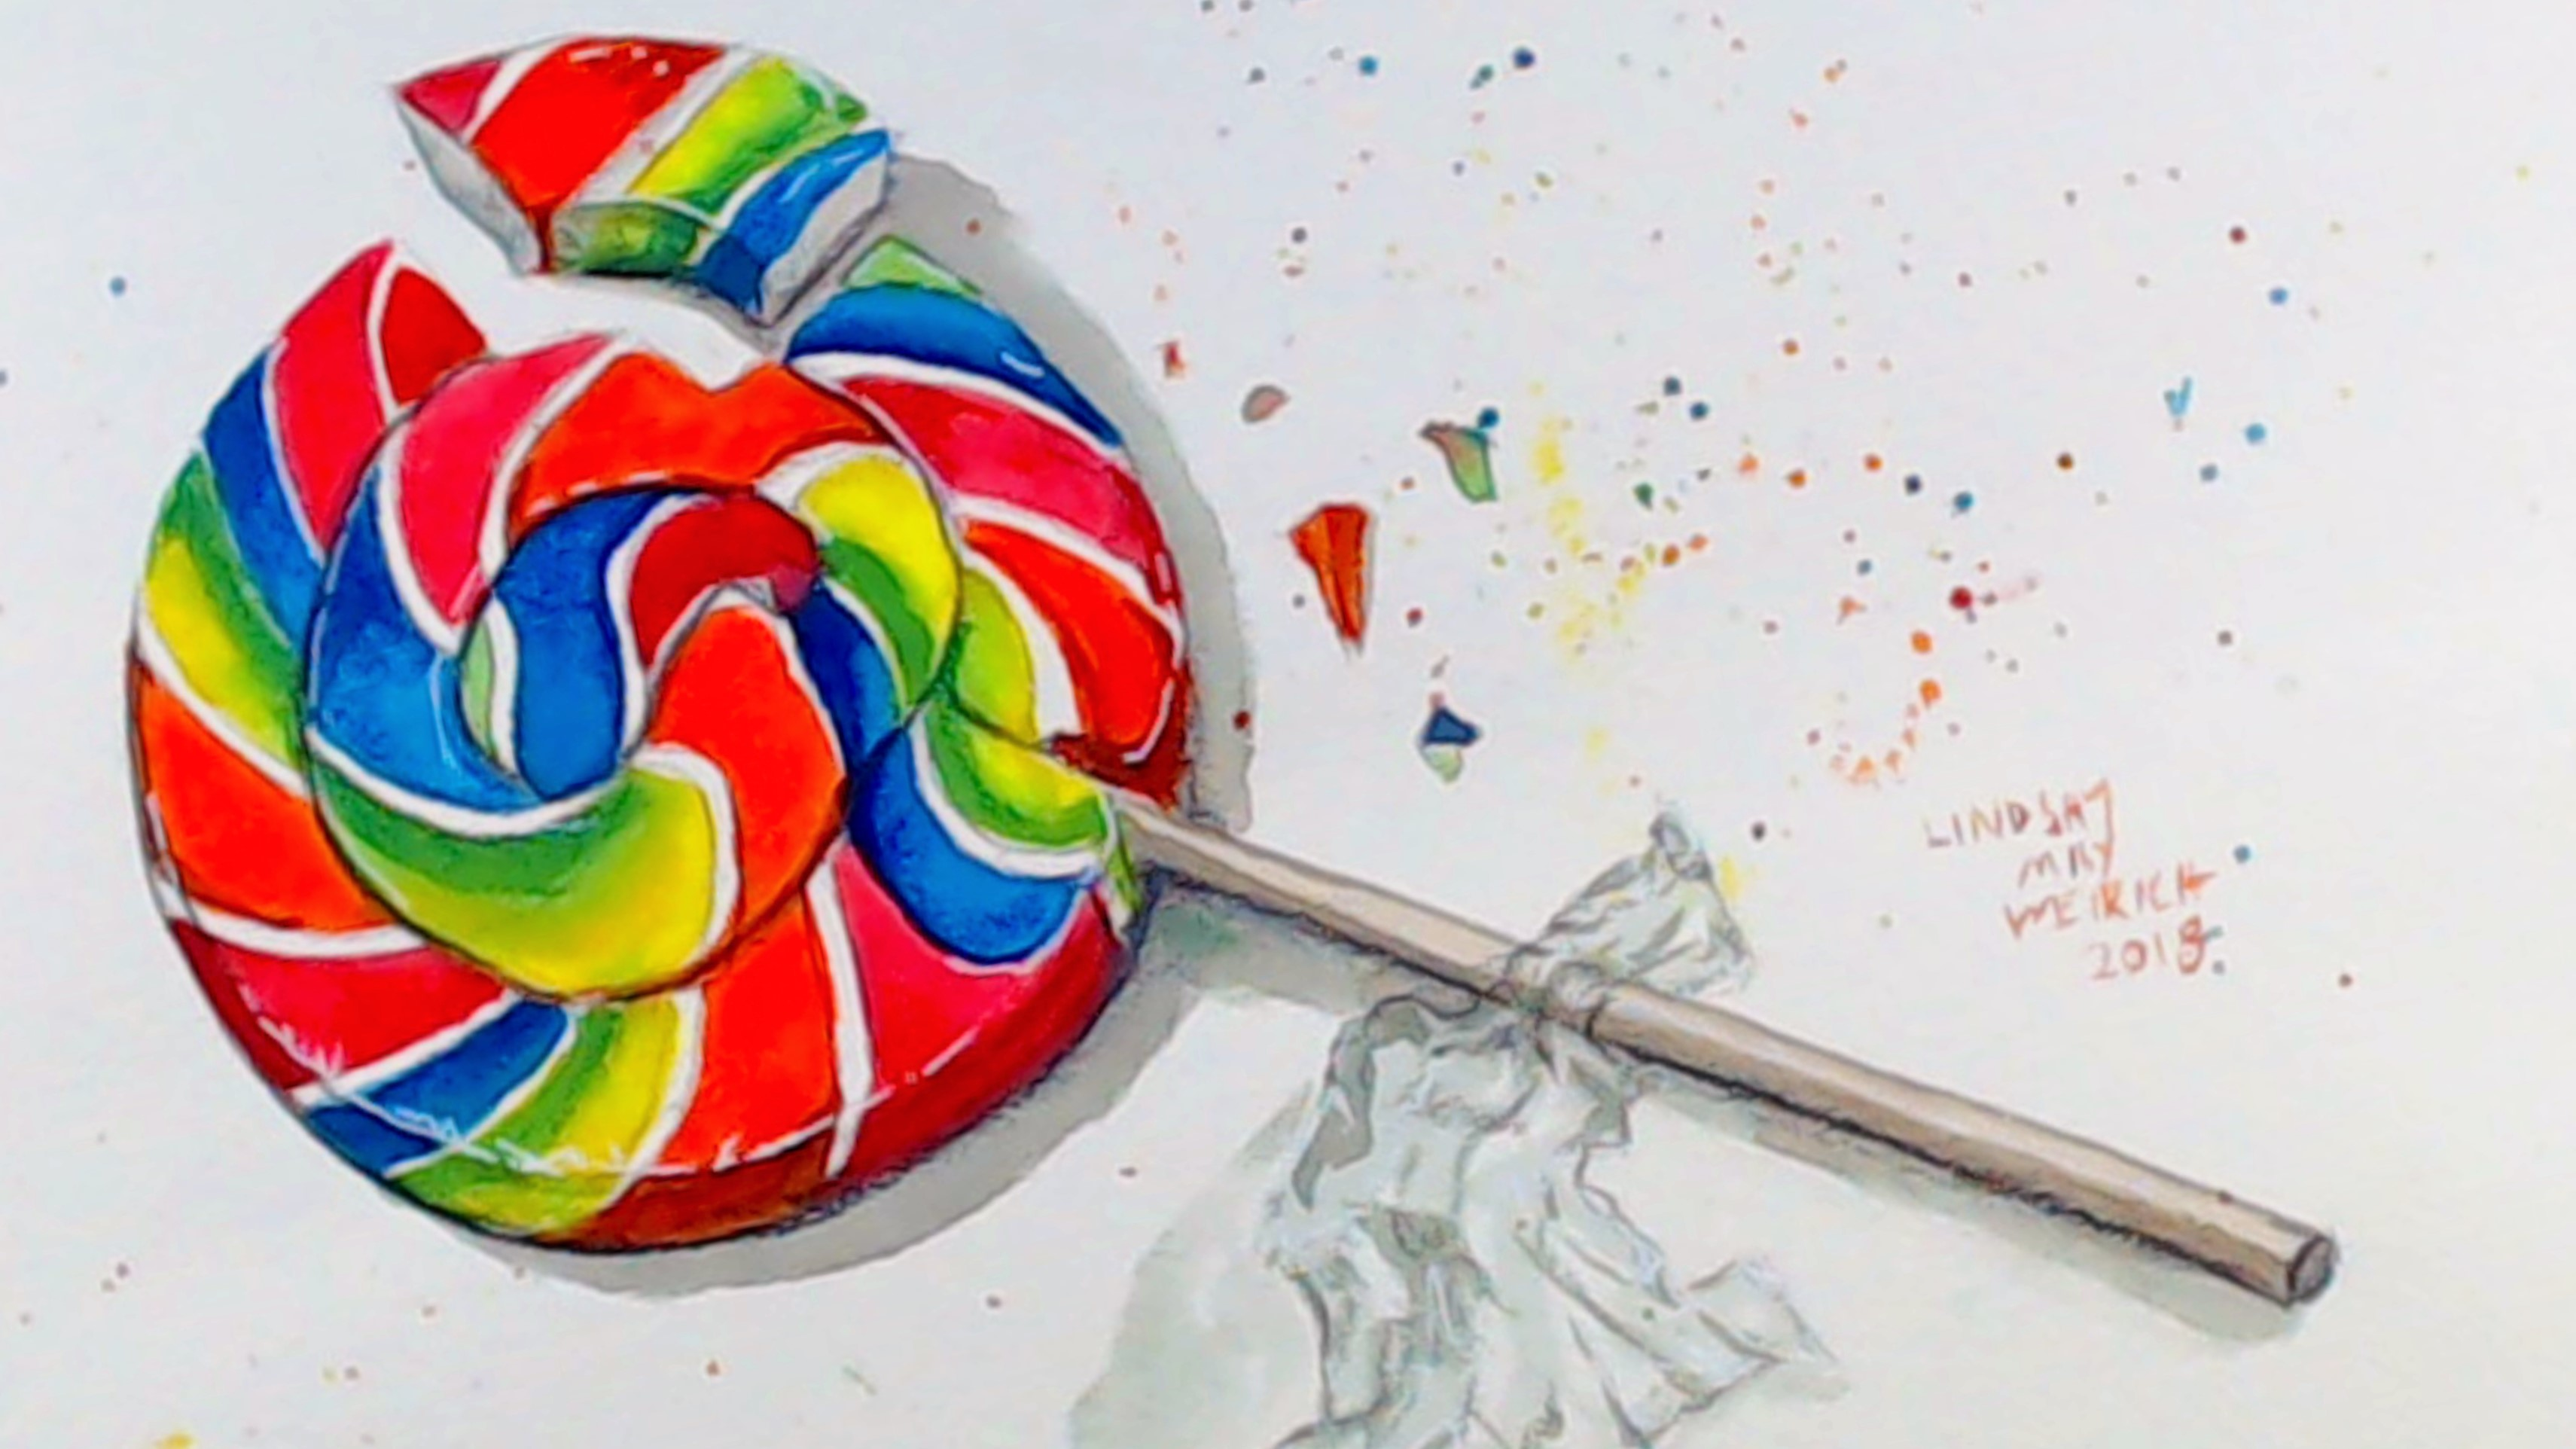 LIVE! Fun & Colorful Rainbow Lollipop in Watercolor! 12:30pm ET